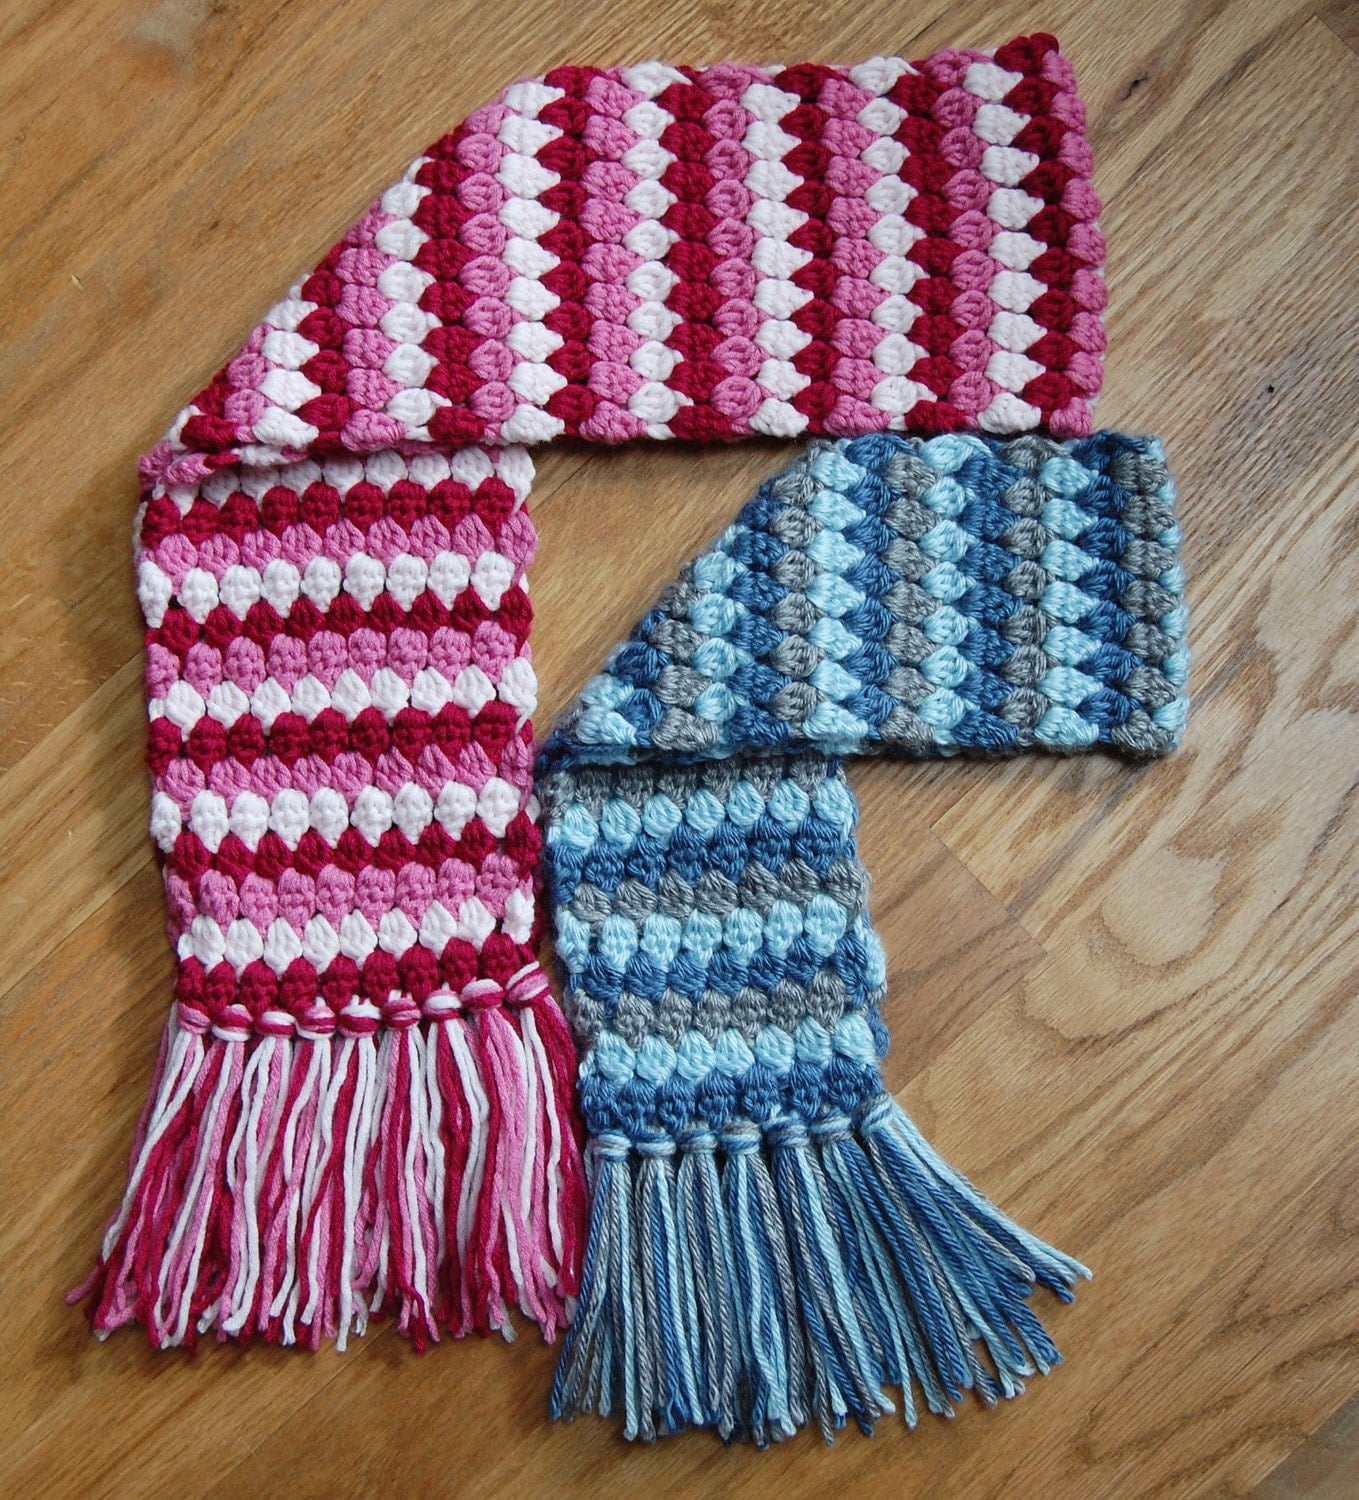 Crochet Pattern Mod Scarf 3 sizes: toddler child